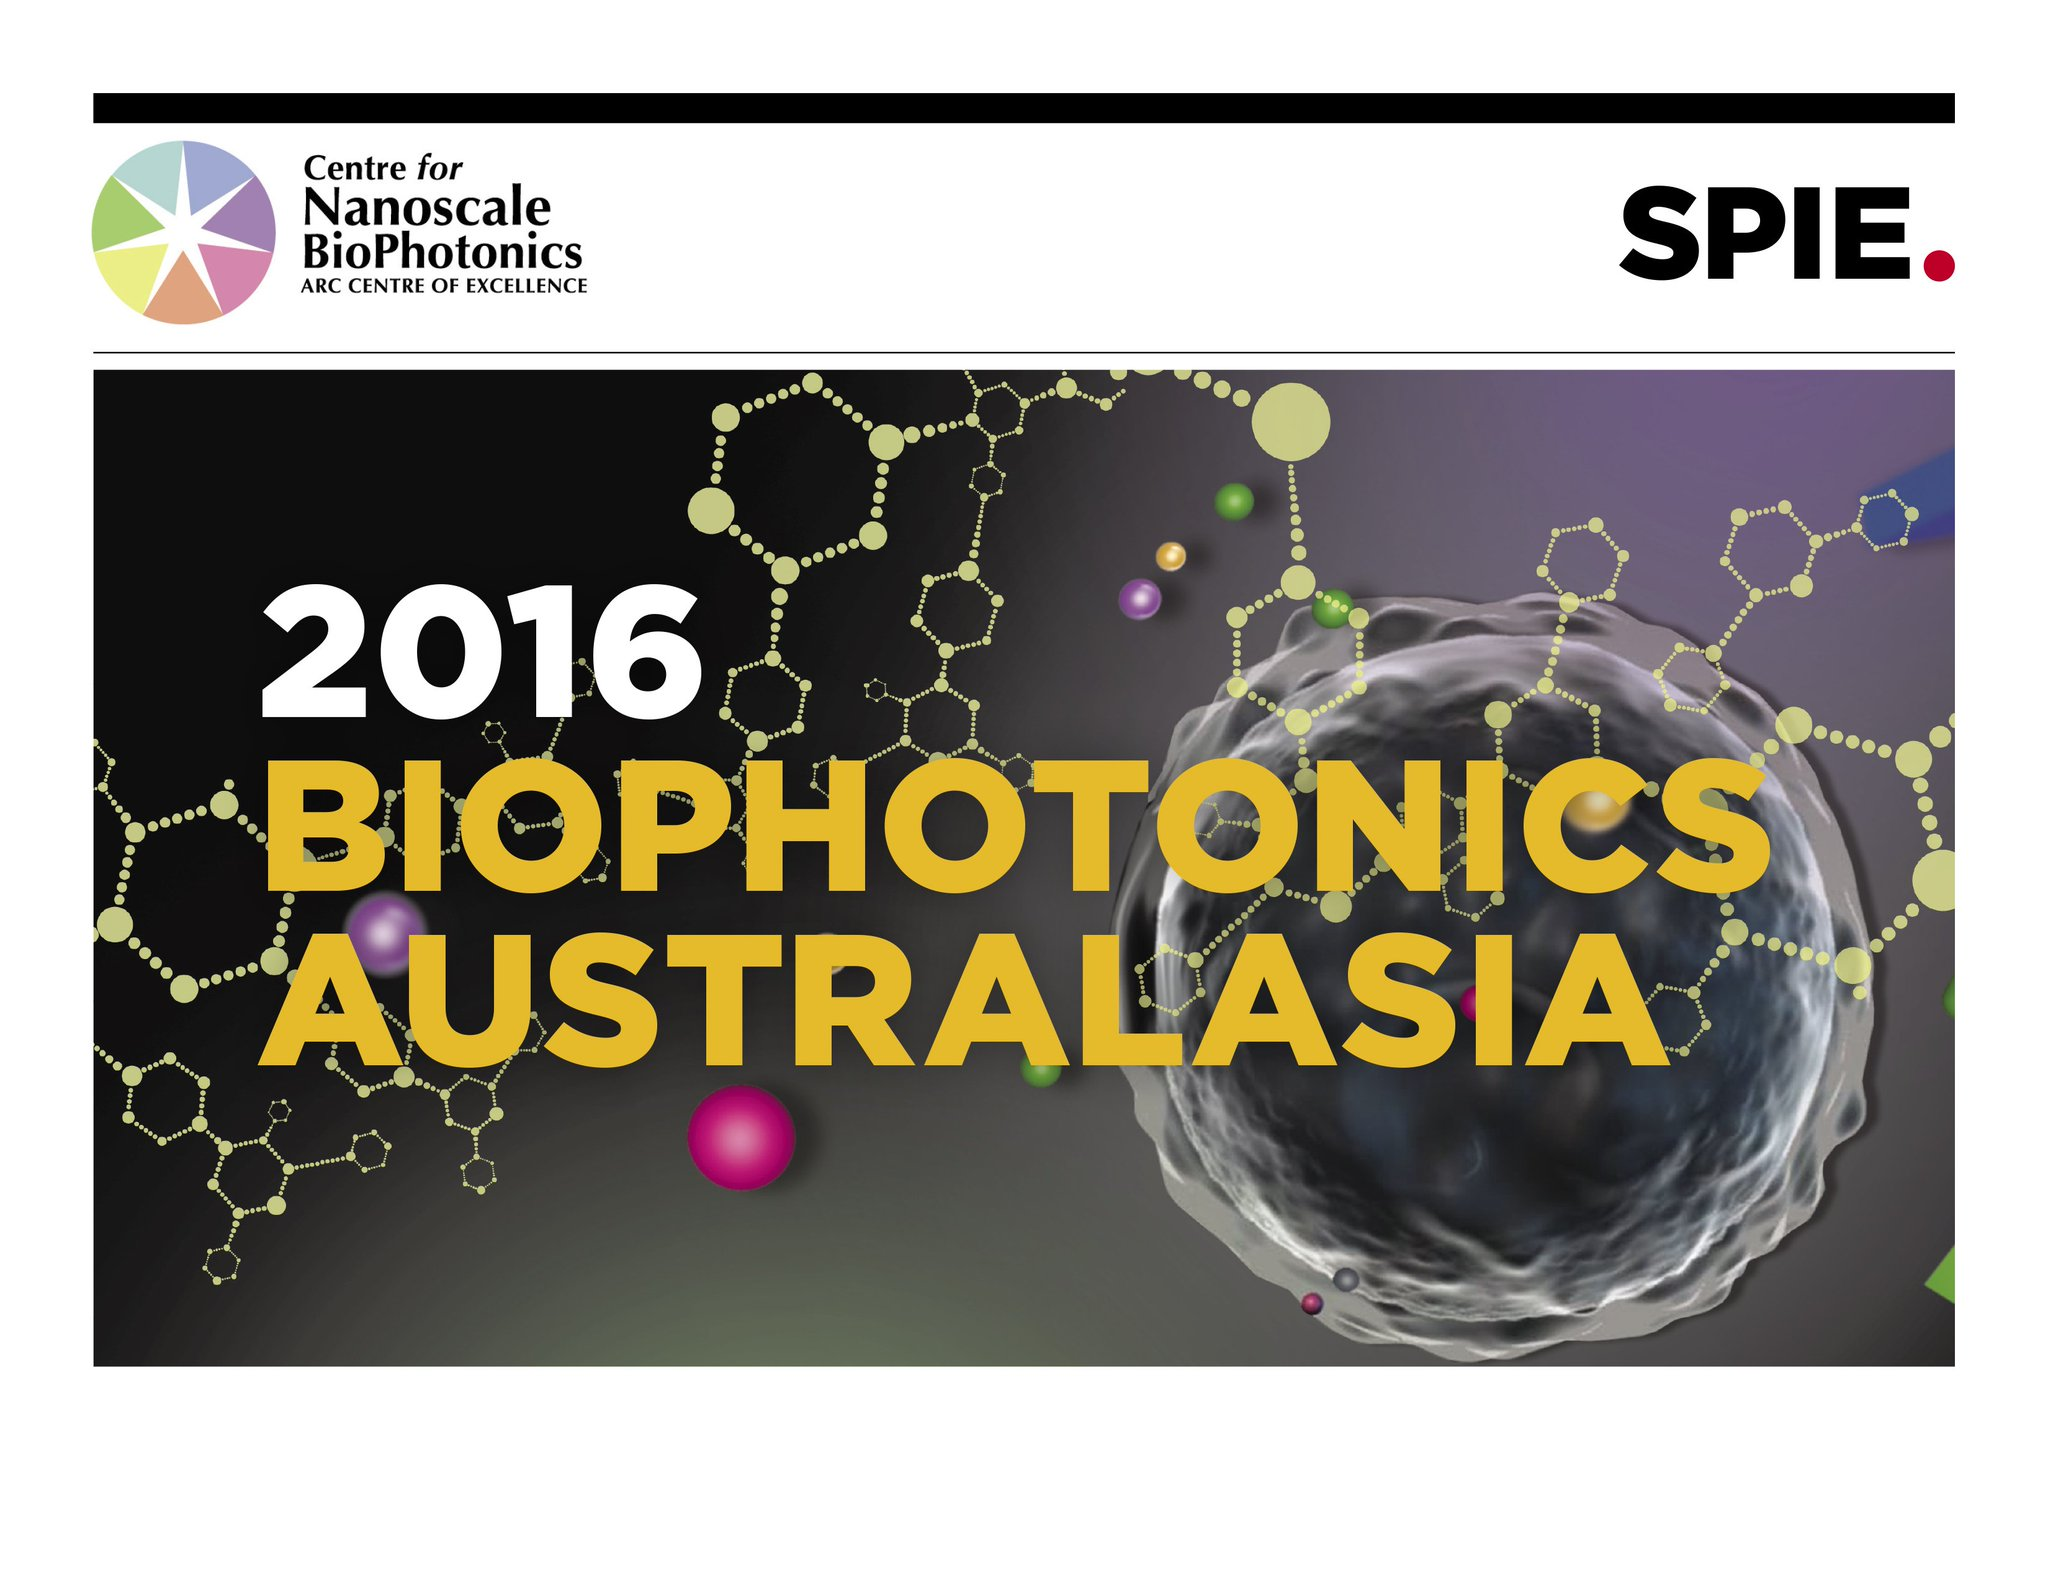 Inaugural SPIE BioPhotonics Australasia conference to shine brightly. Cohosted by #CNBP! https://t.co/sX01YYgEoa https://t.co/IjOdpYweD4